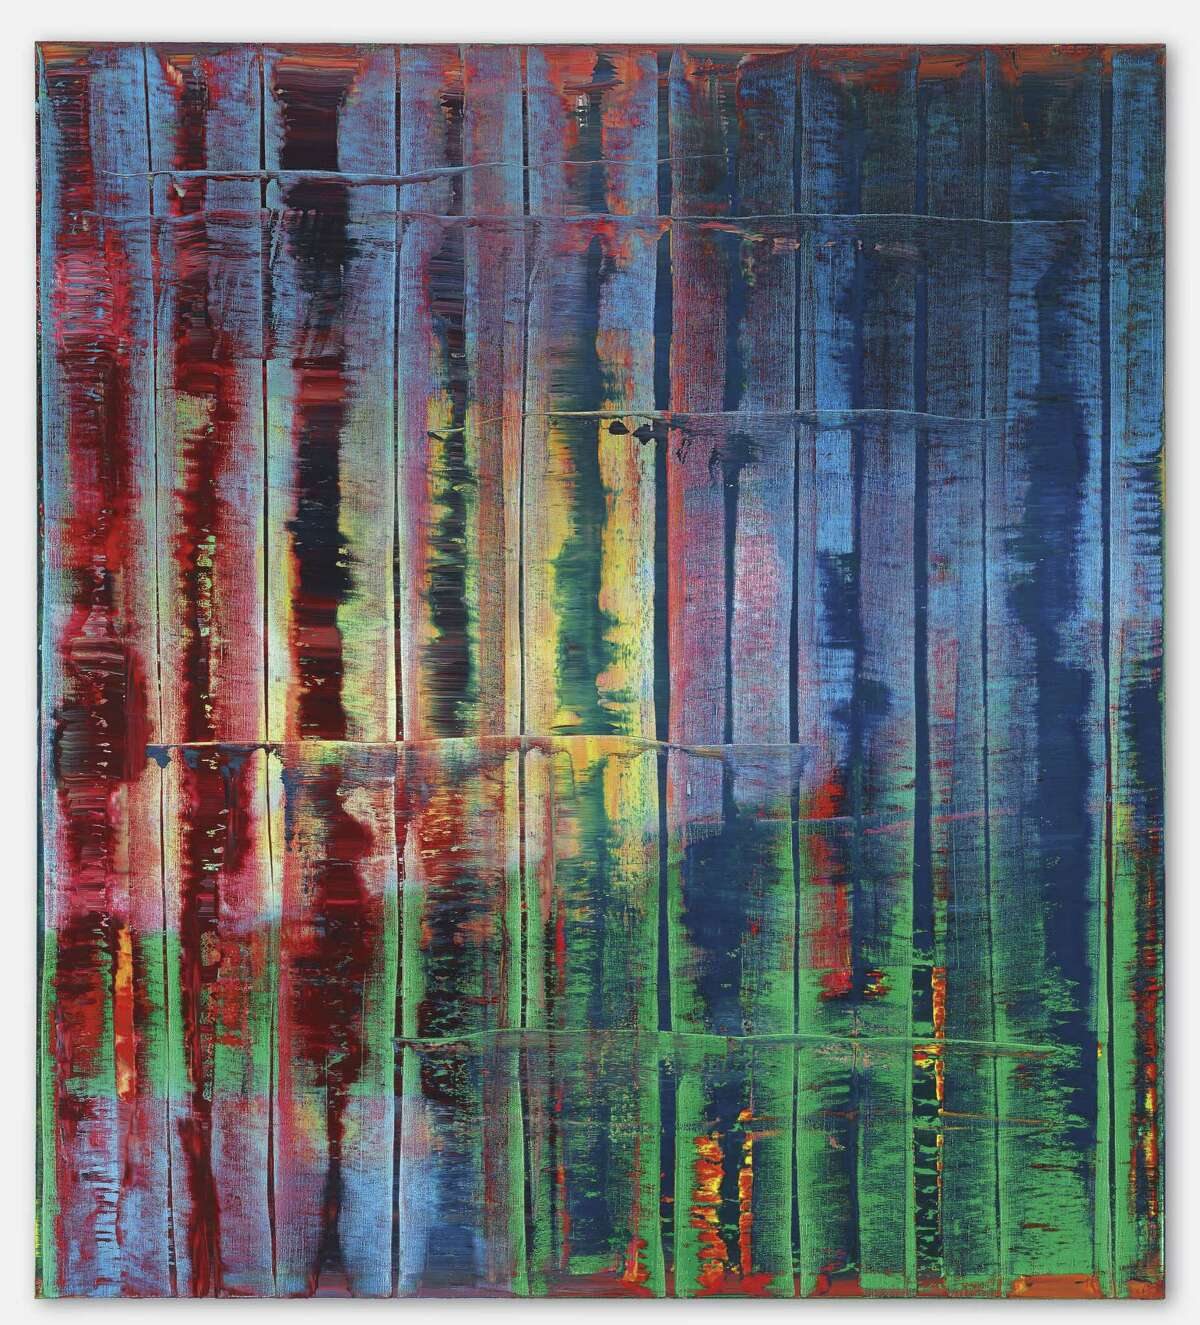 """Gerhard Richter's """"Abstrak- tes Bild (774-4),"""" valued between $14 million and $18 million, is likely to garner bids from collectors around the world."""